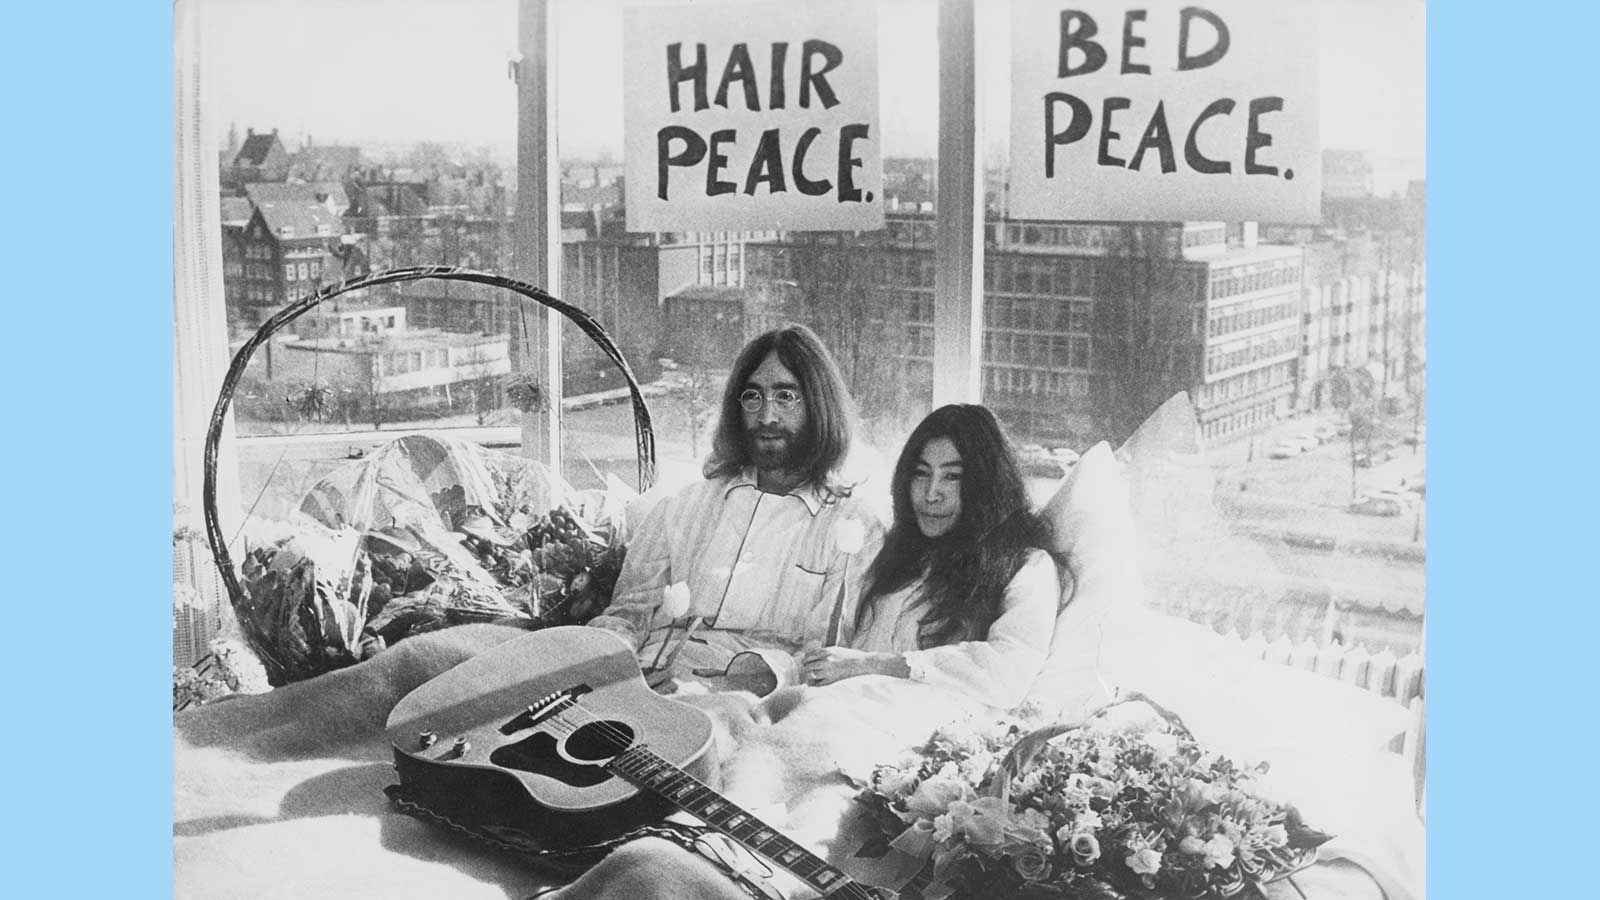 John Lennon and Yoko Ono's bed-in for peace at a Hilton hotel in Amsterdam